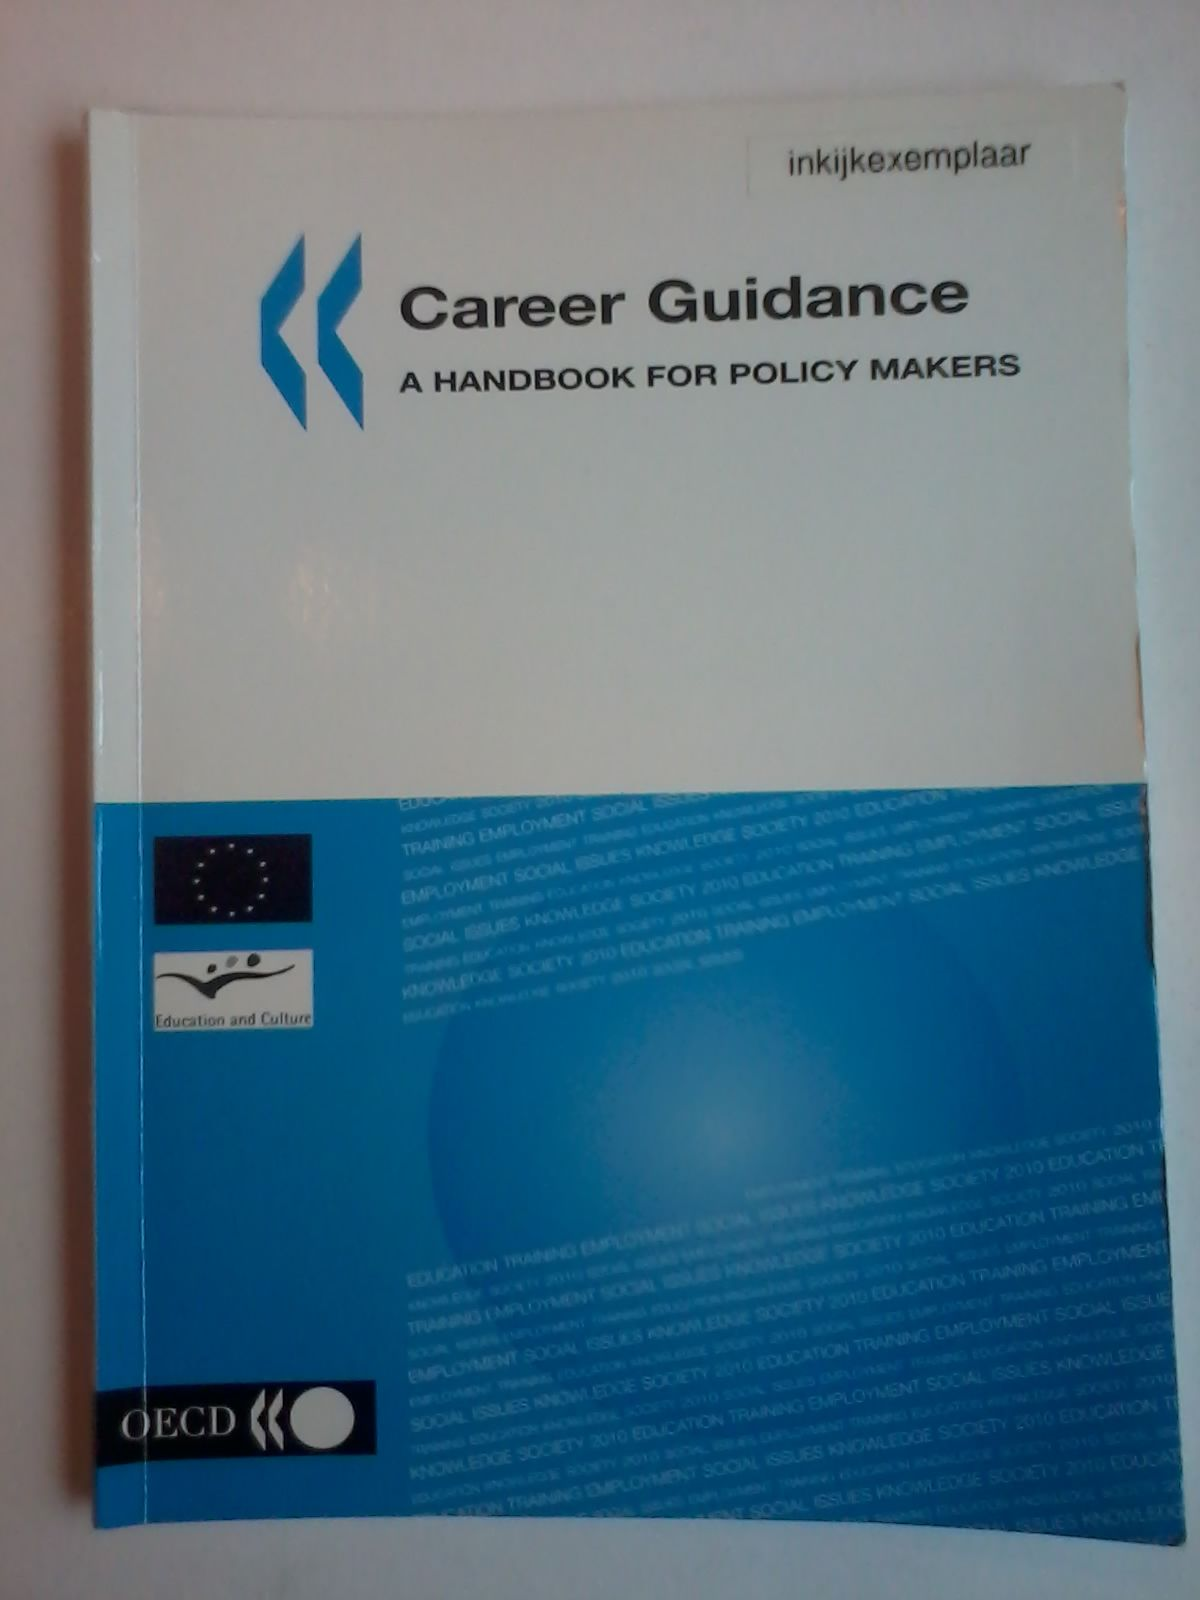 The handbook of career advising career readiness guide array 2004 oecd u0026 ec career guidance a handbook for policy makers rh pinterest com fandeluxe Image collections